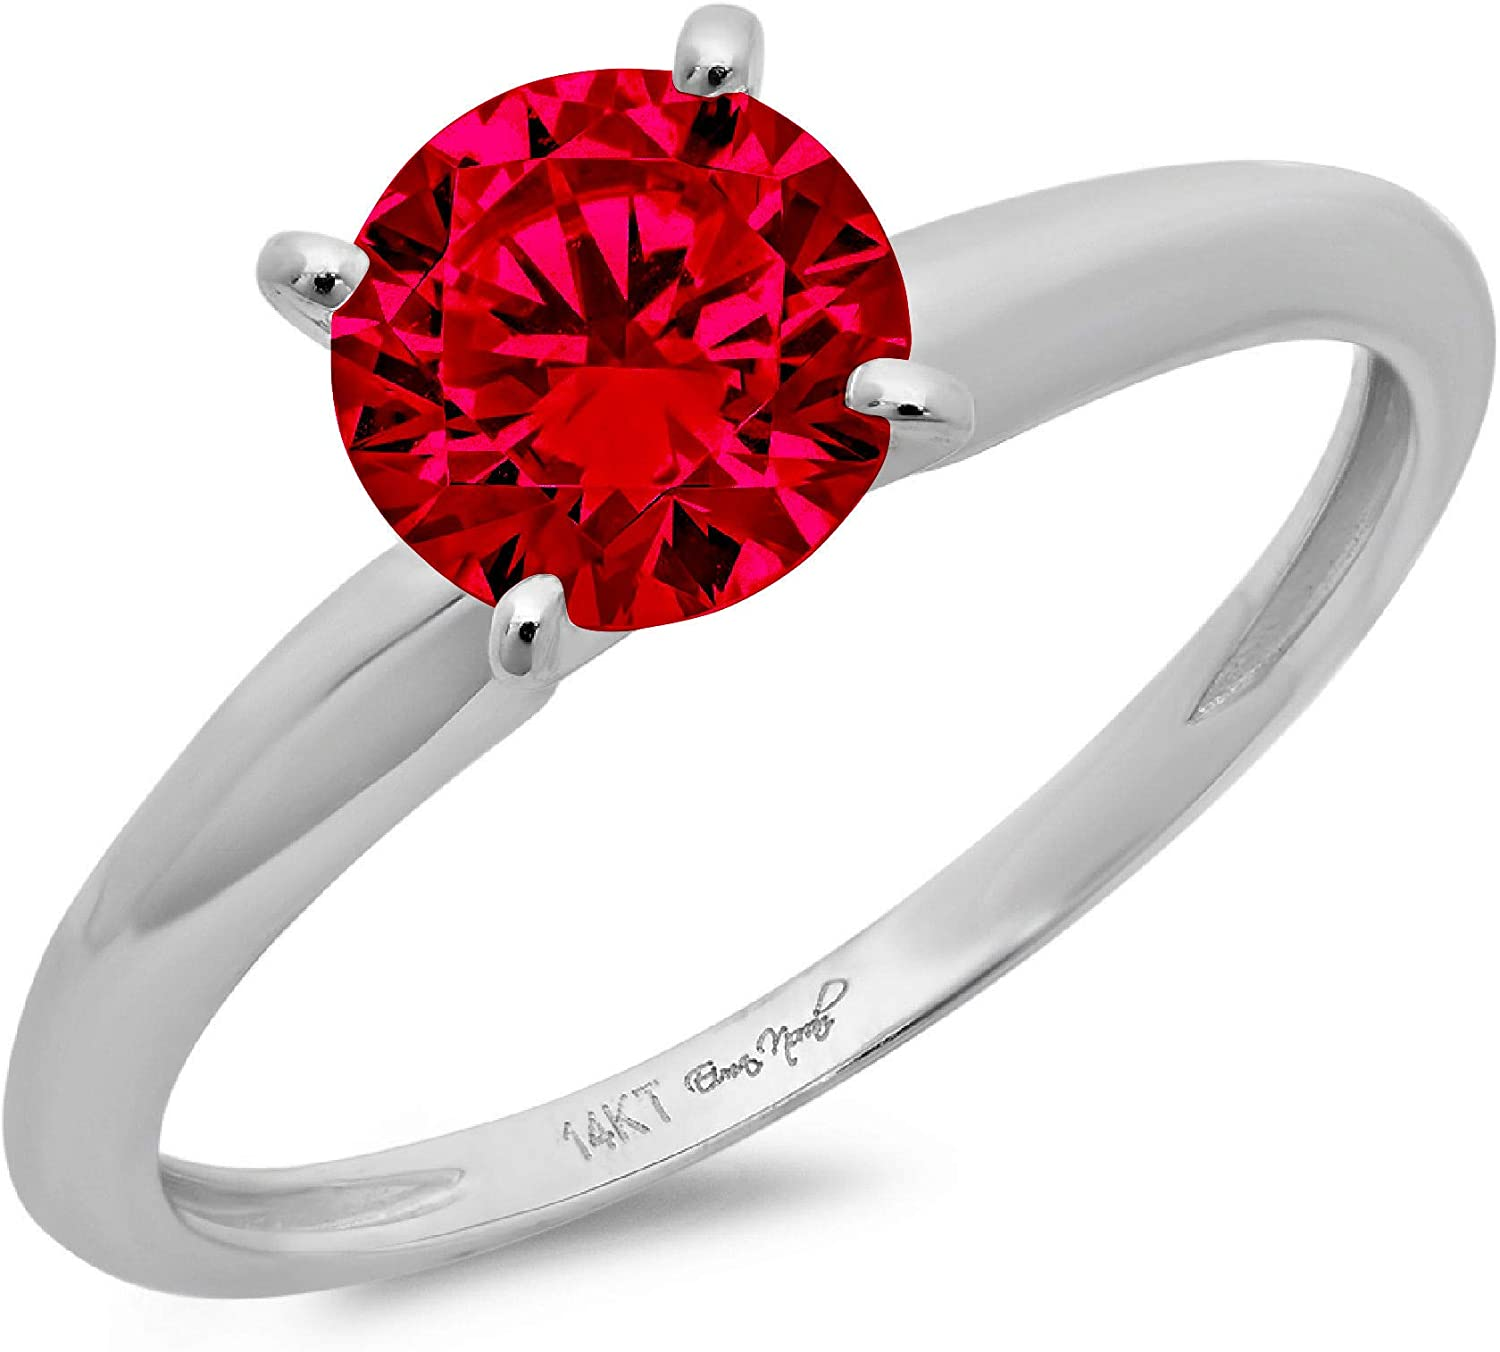 2.95 ct Brilliant Round Shape Solitaire Flawless Pink Tourmaline Ideal VVS1 4-Prong Engagement Wedding Bridal Promise Anniversary Designer Ring in Solid 18k White Gold for Women